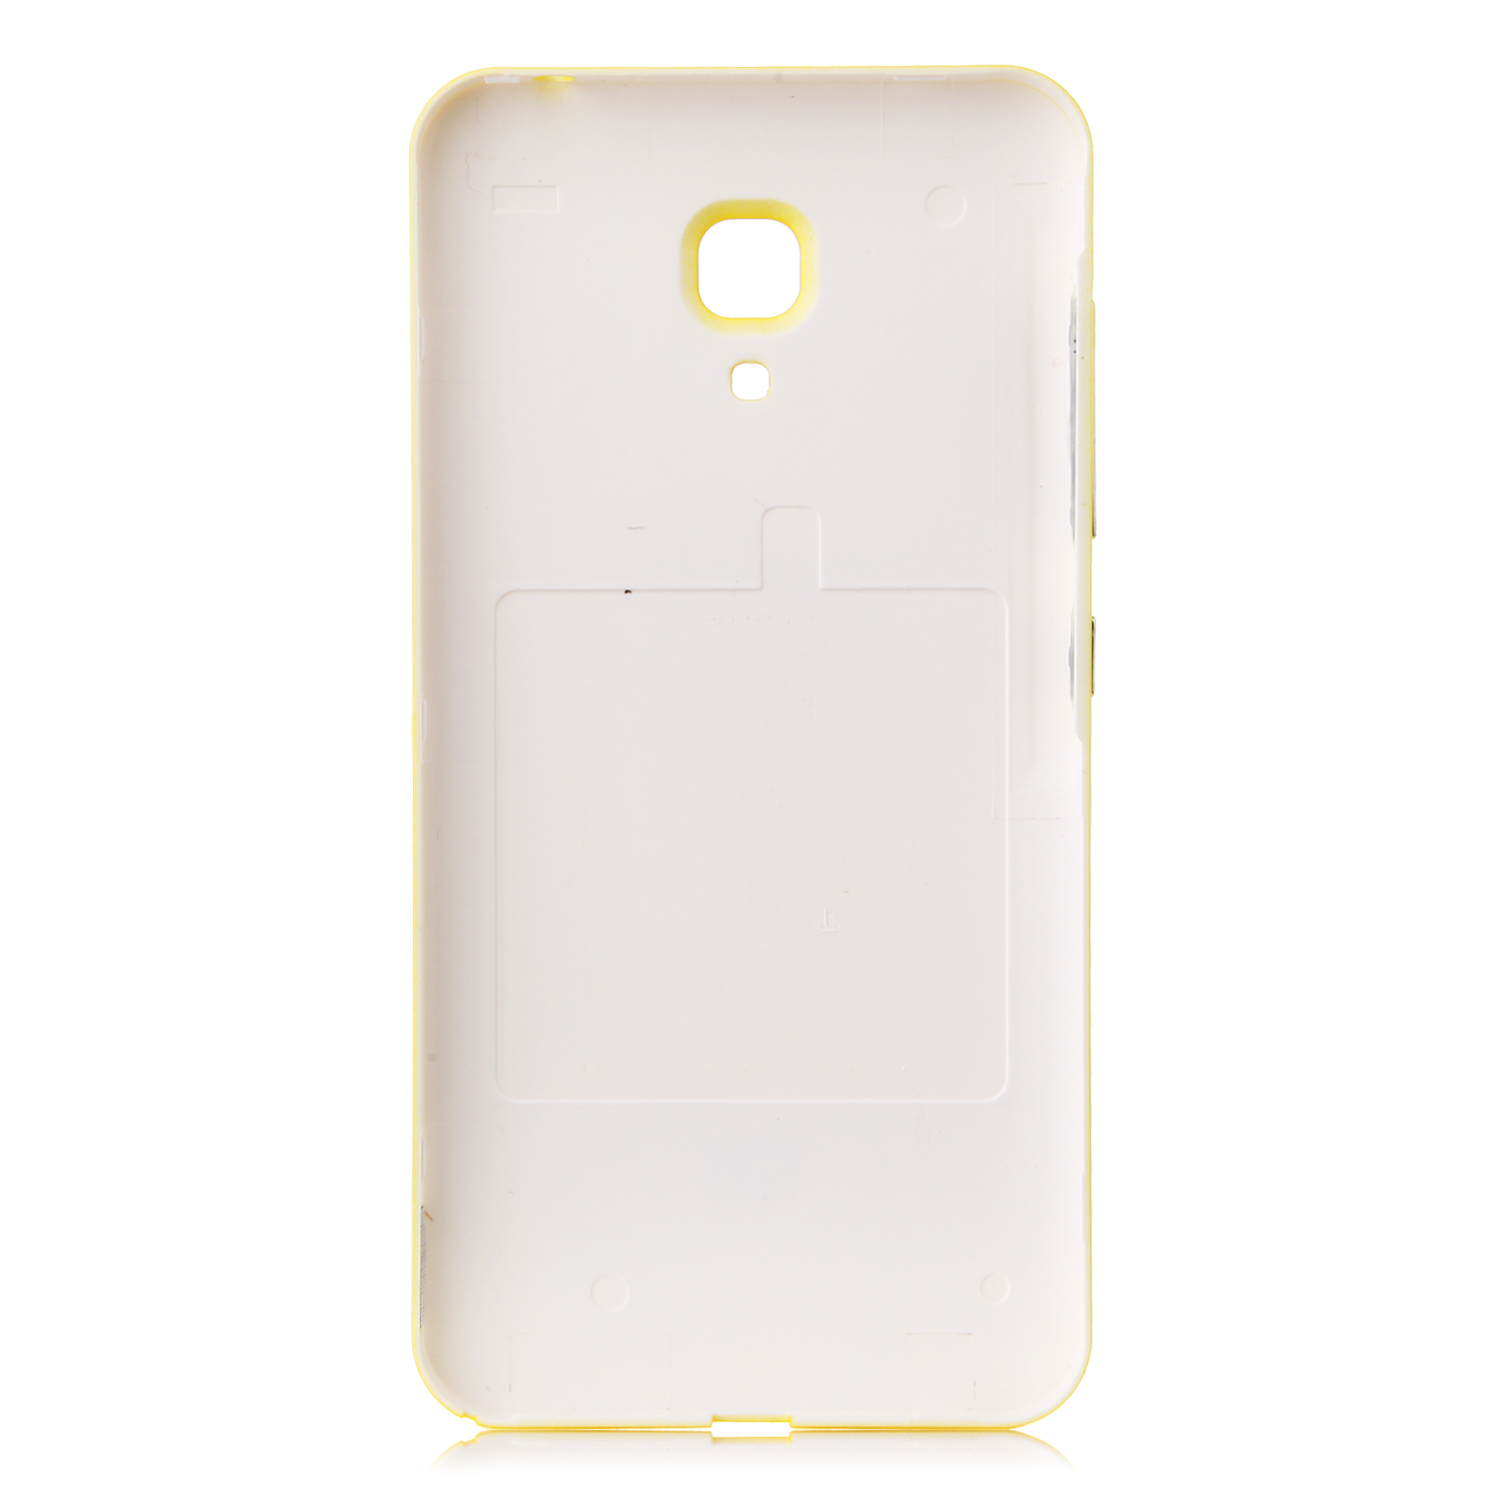 Replacement Battery Cover Back Case for XIAOMI 2A Smartphone Yellow